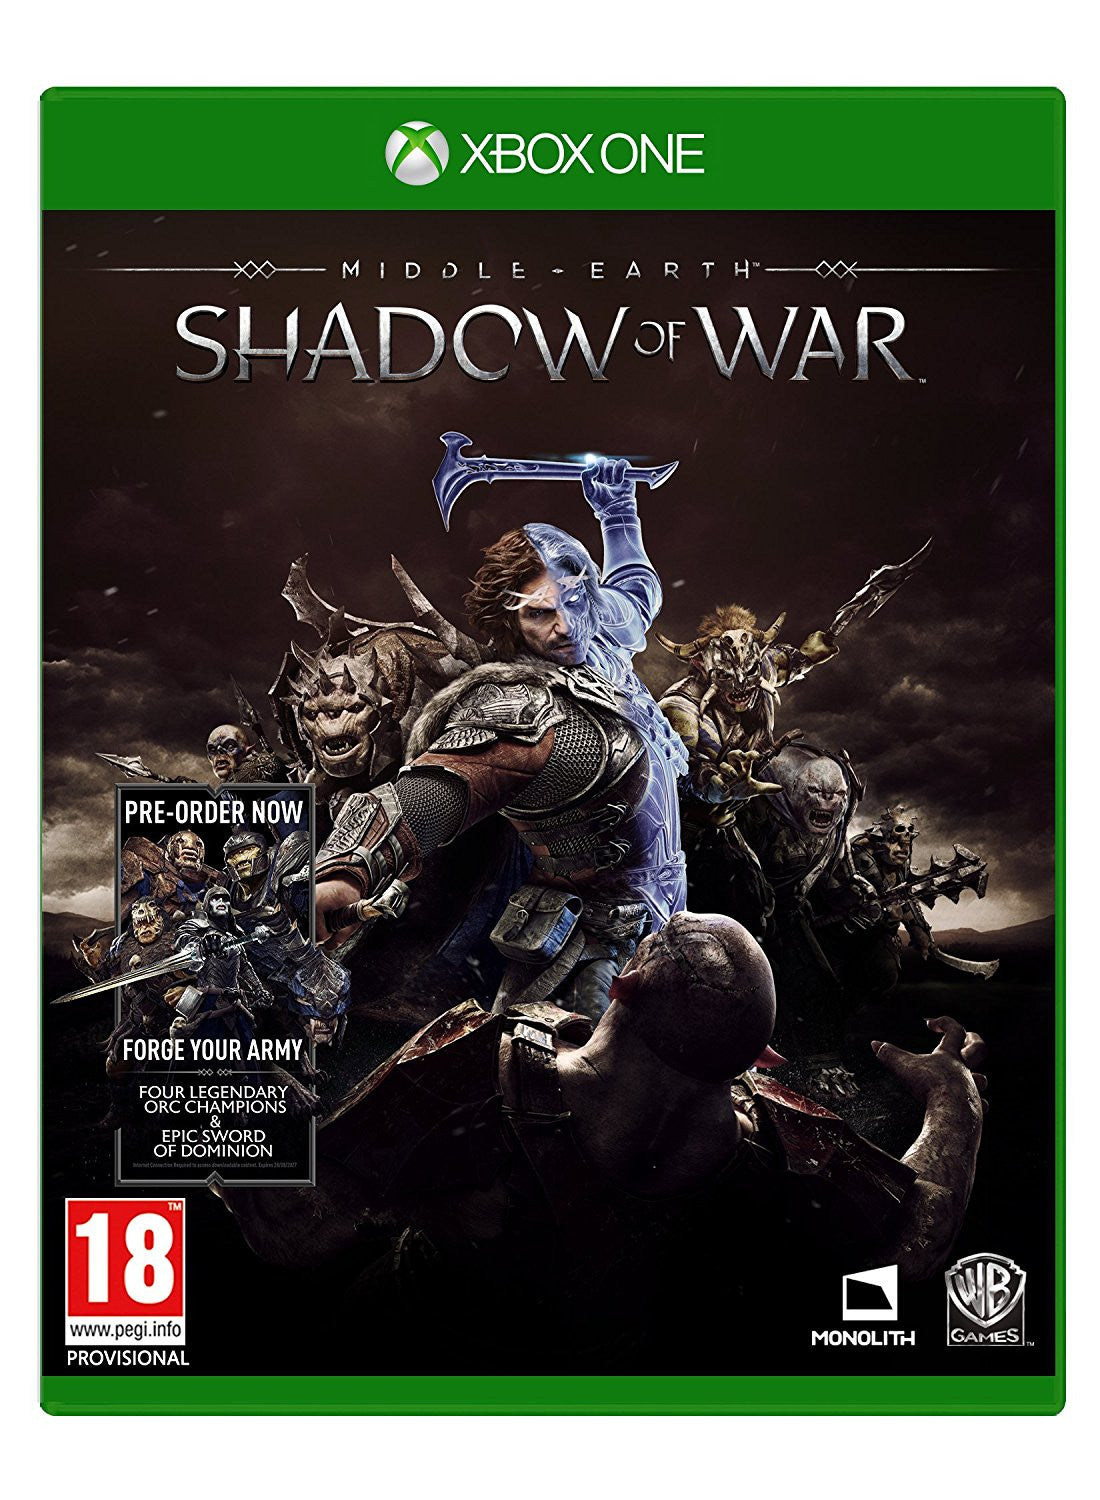 Middle-earth: Shadow of War Standard Edition, Xbox One - Video Games by Warner Bros. Interactive Entertainment The Chelsea Gamer